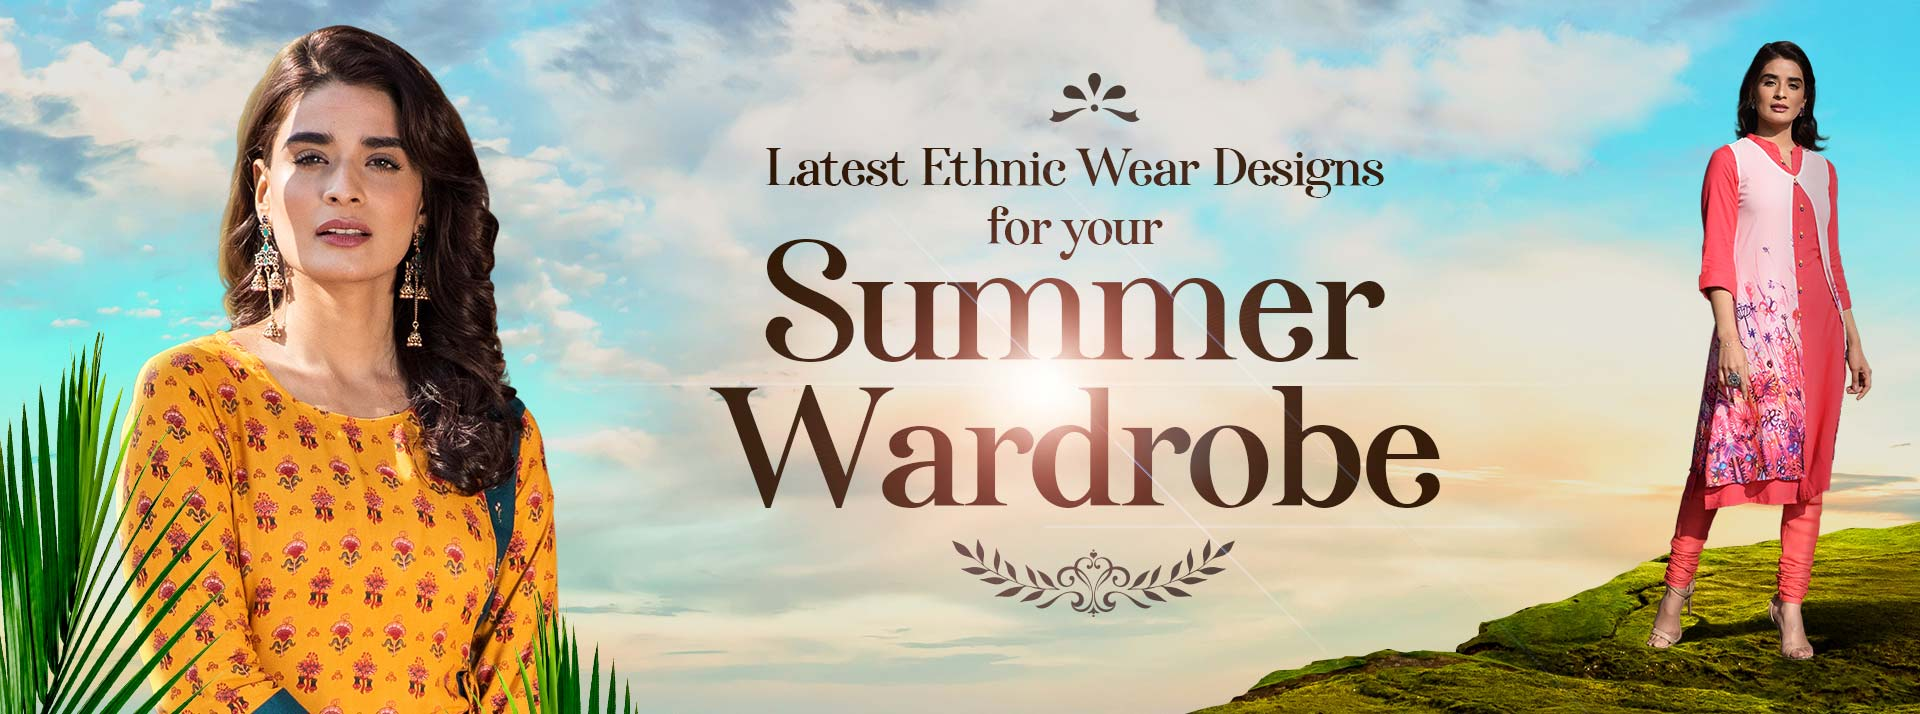 Do you have these Latest Ethnic Wear Designs in your Summer Wardrobe?